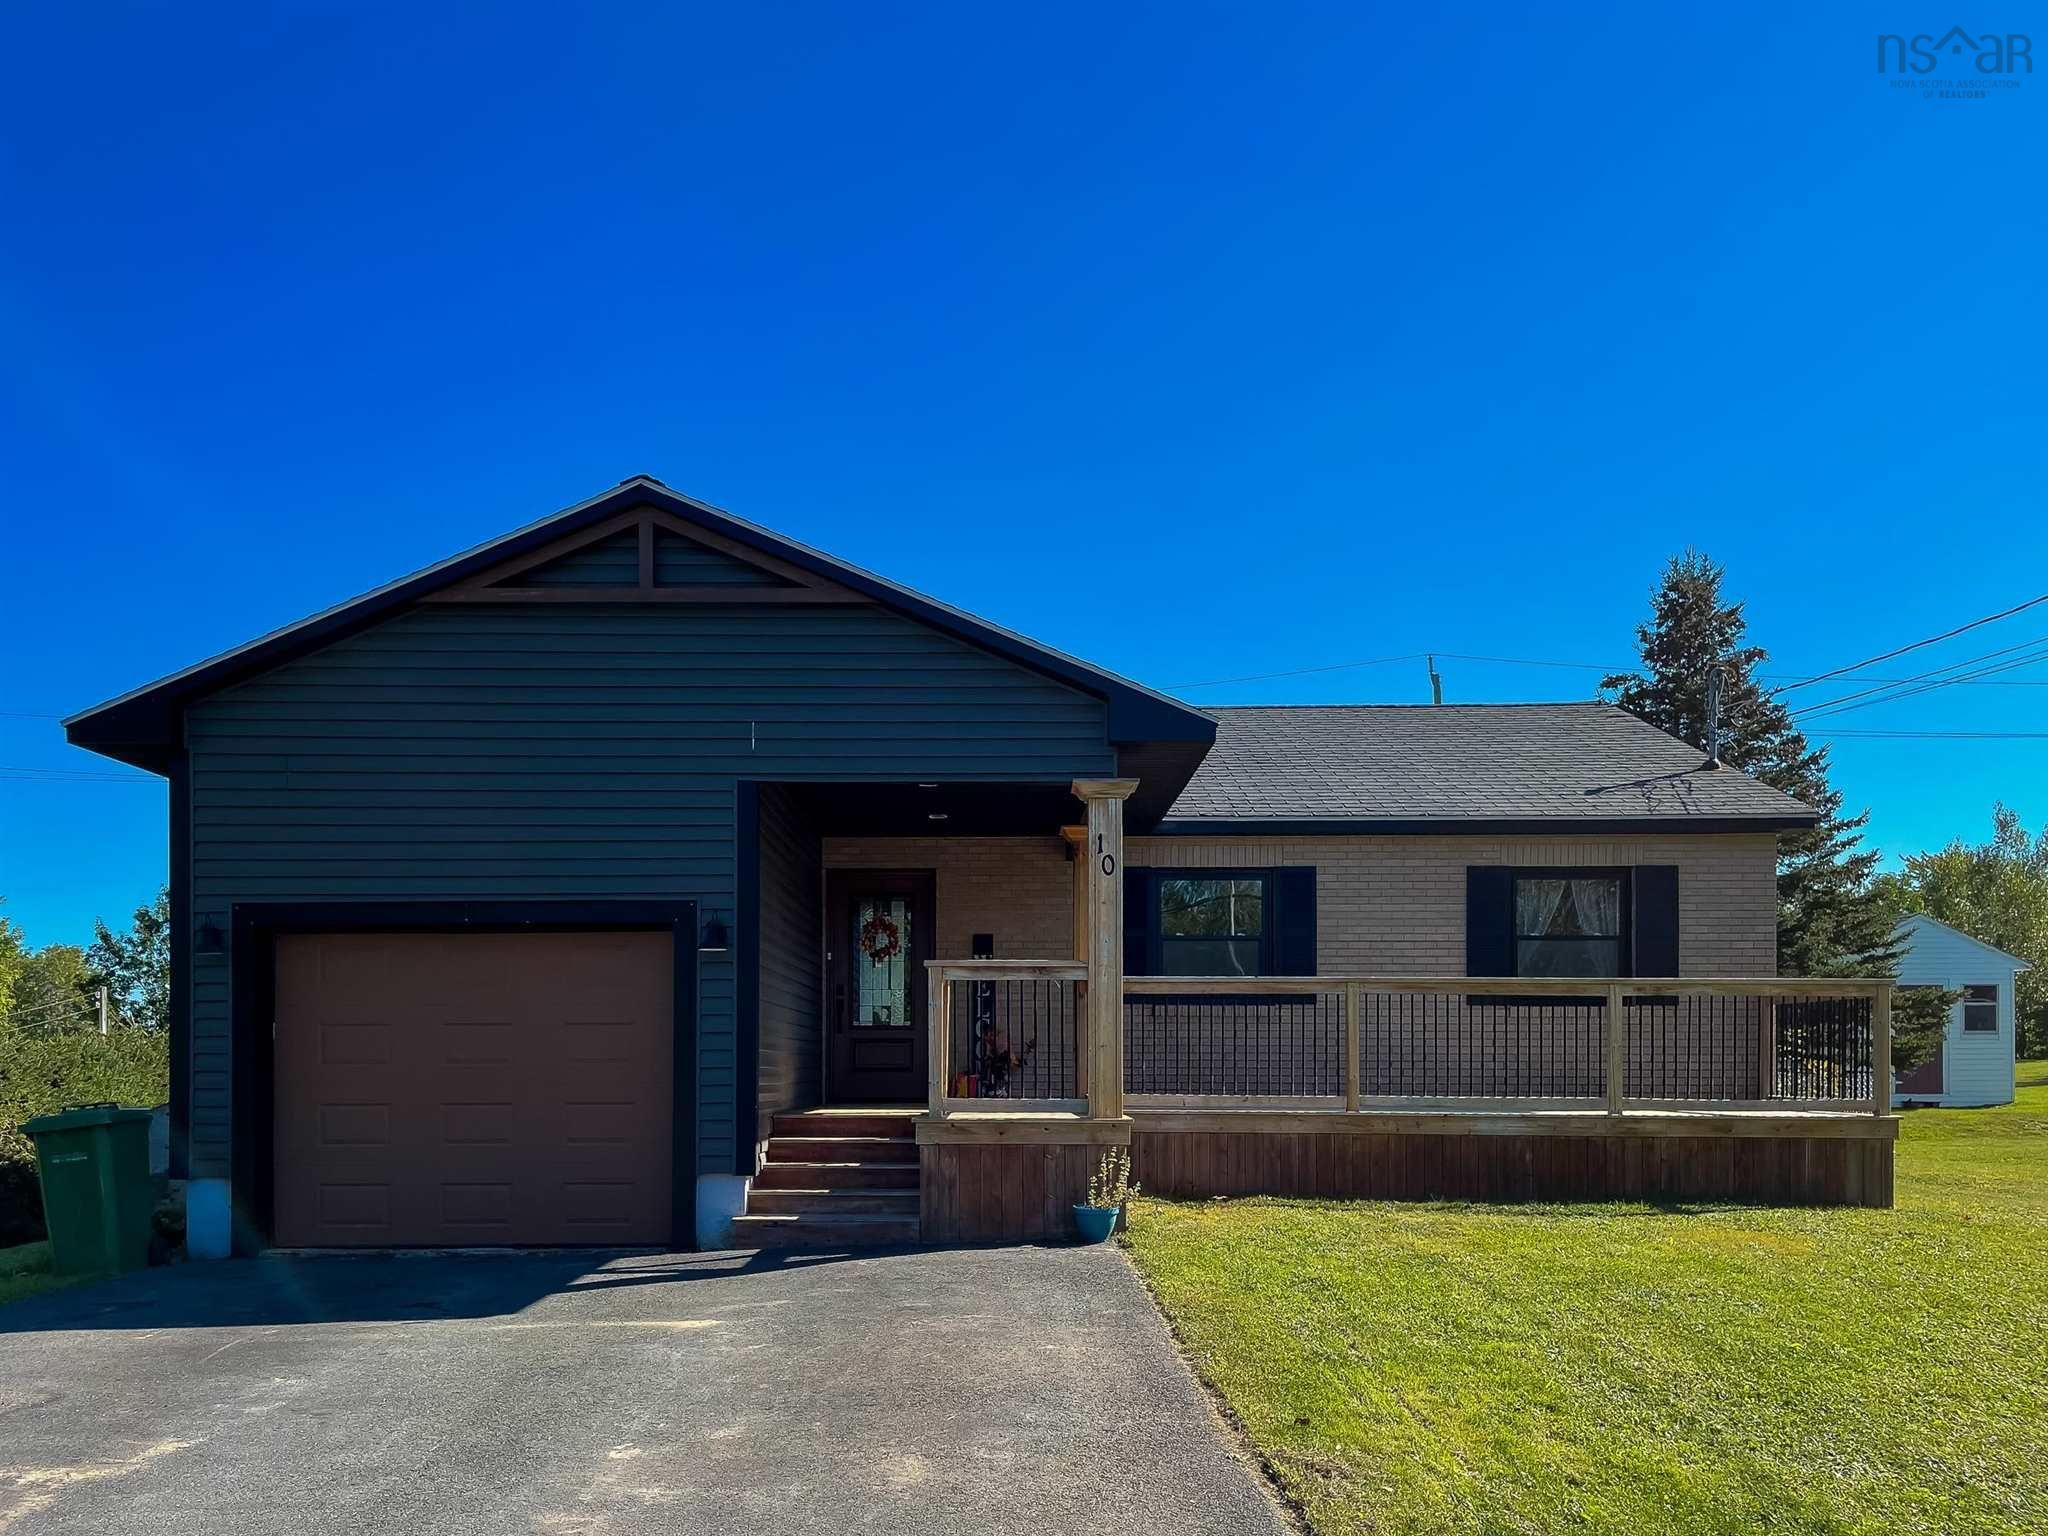 Main Photo: 10 Illsley Drive in Berwick: 404-Kings County Residential for sale (Annapolis Valley)  : MLS®# 202124135